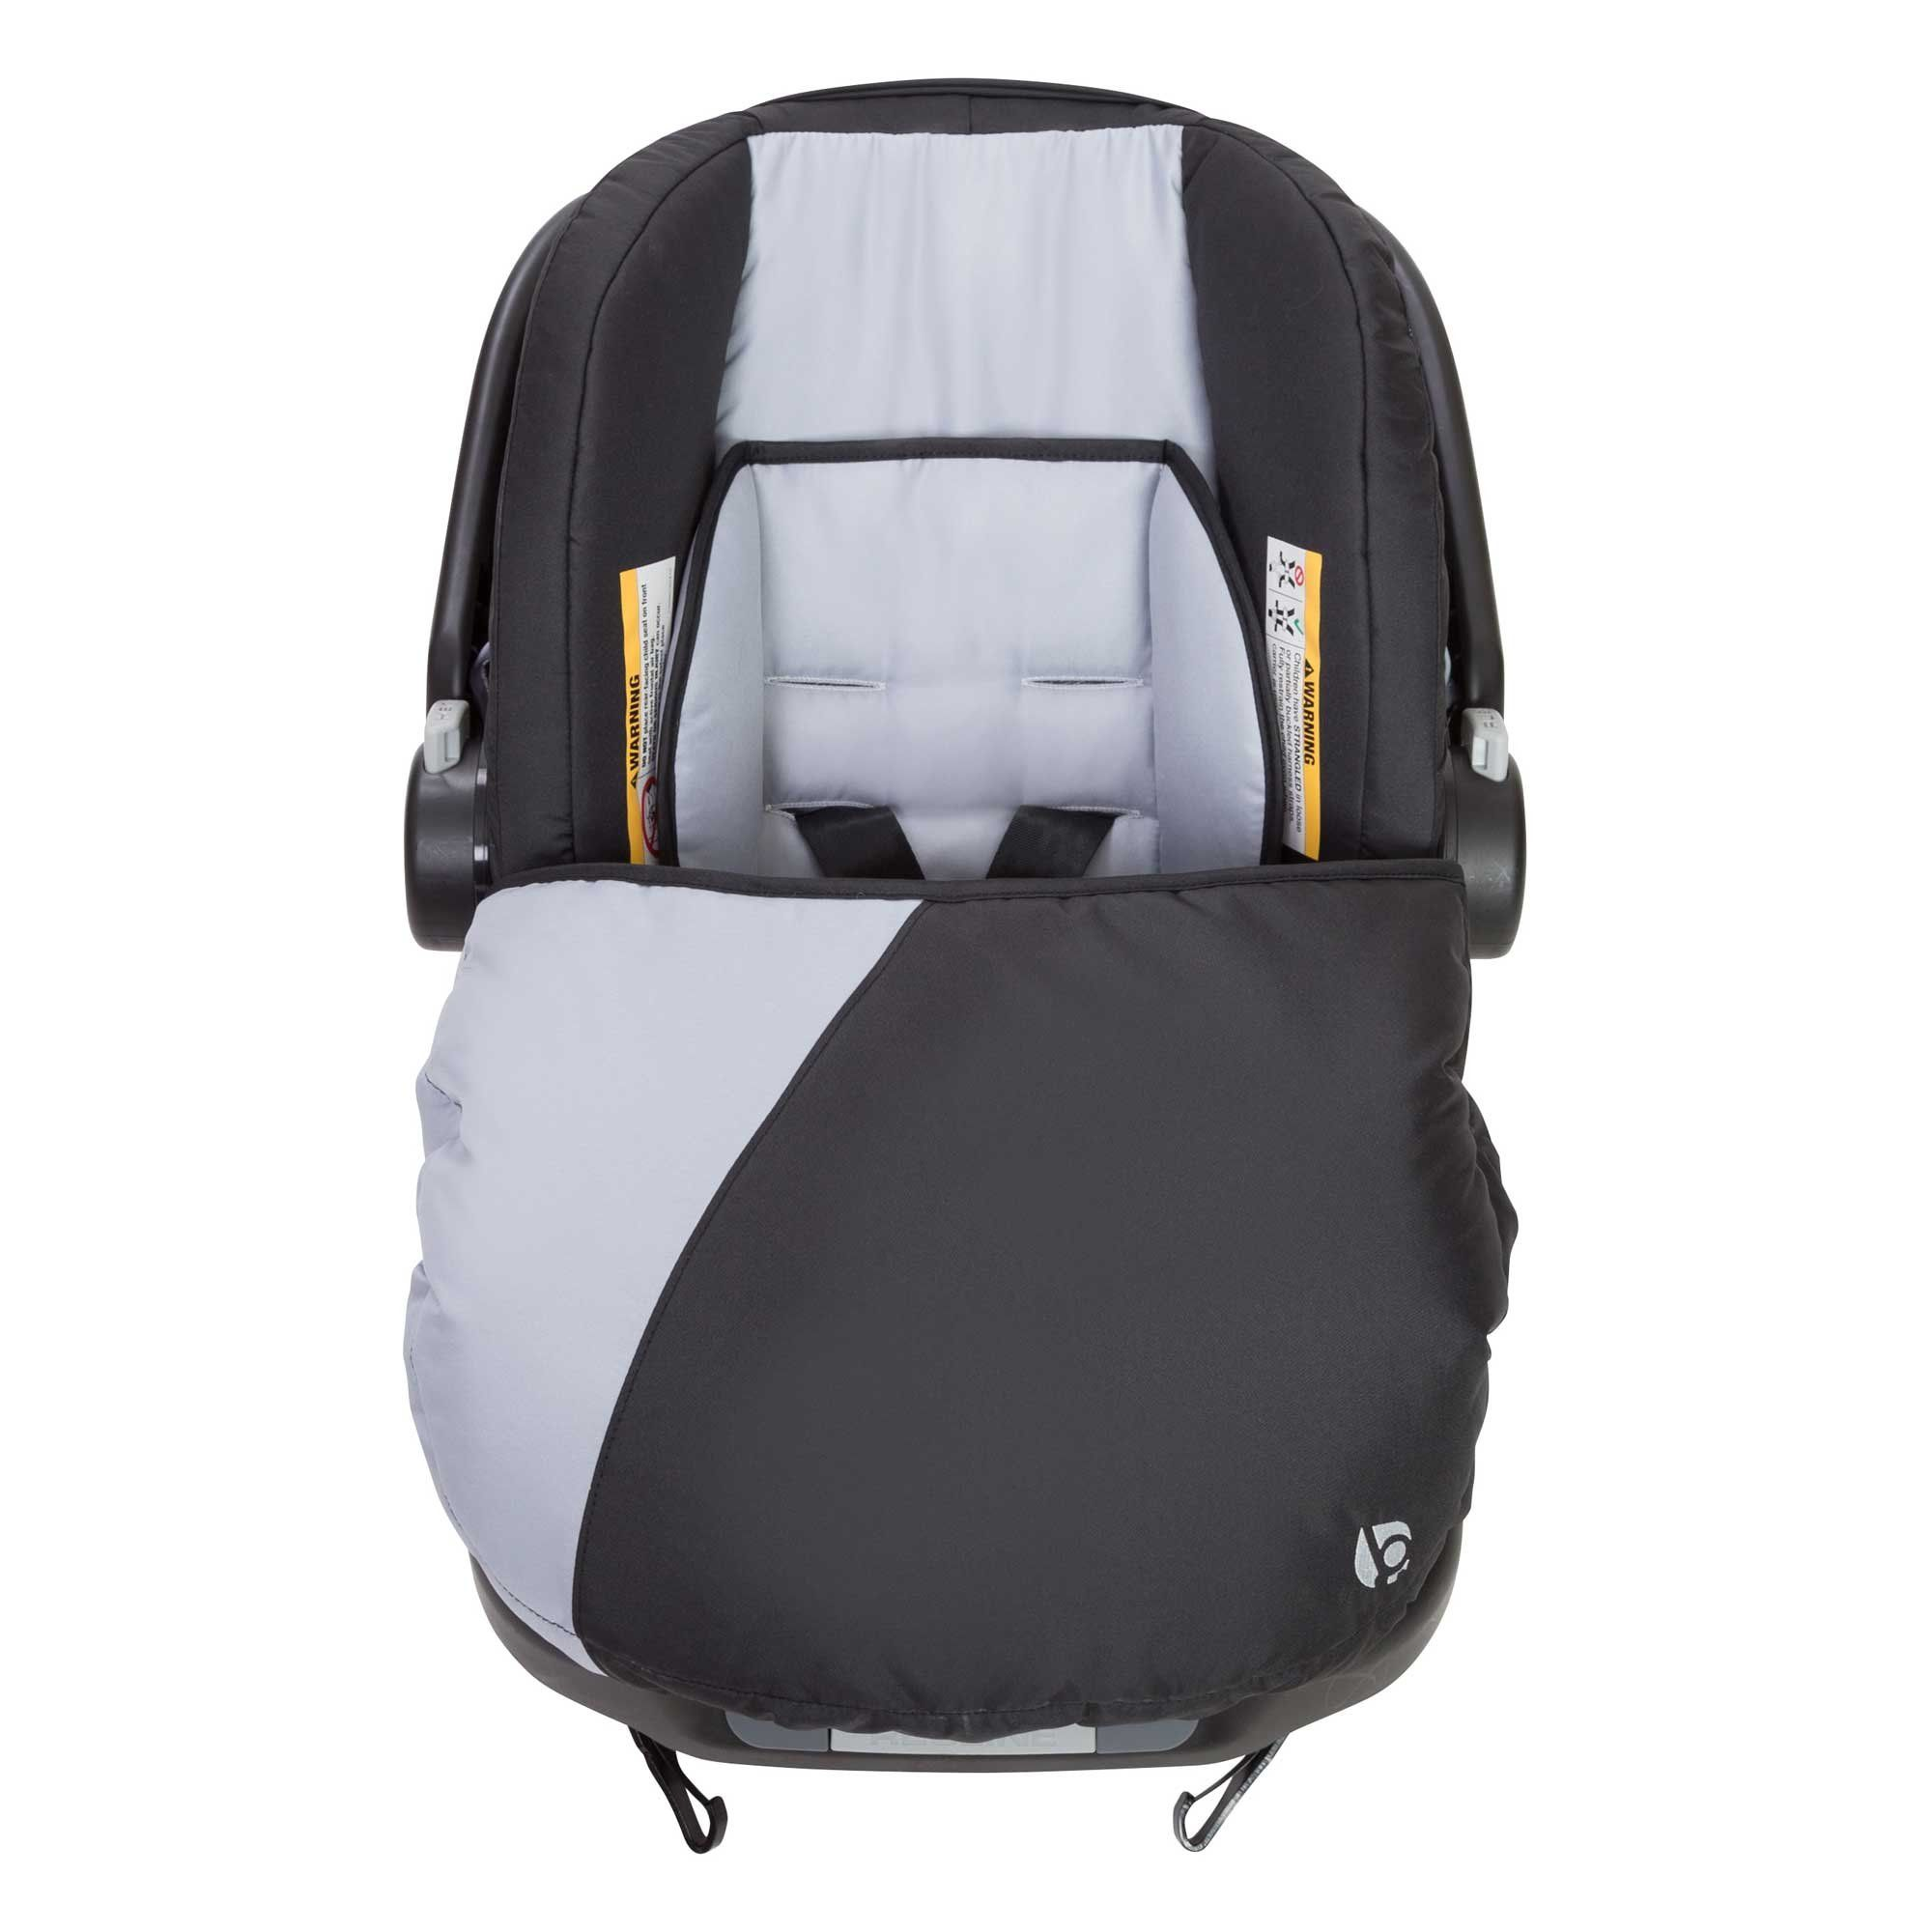 Baby Trend FlexLoc Adjustable 35 Pound Infant Car Seat and